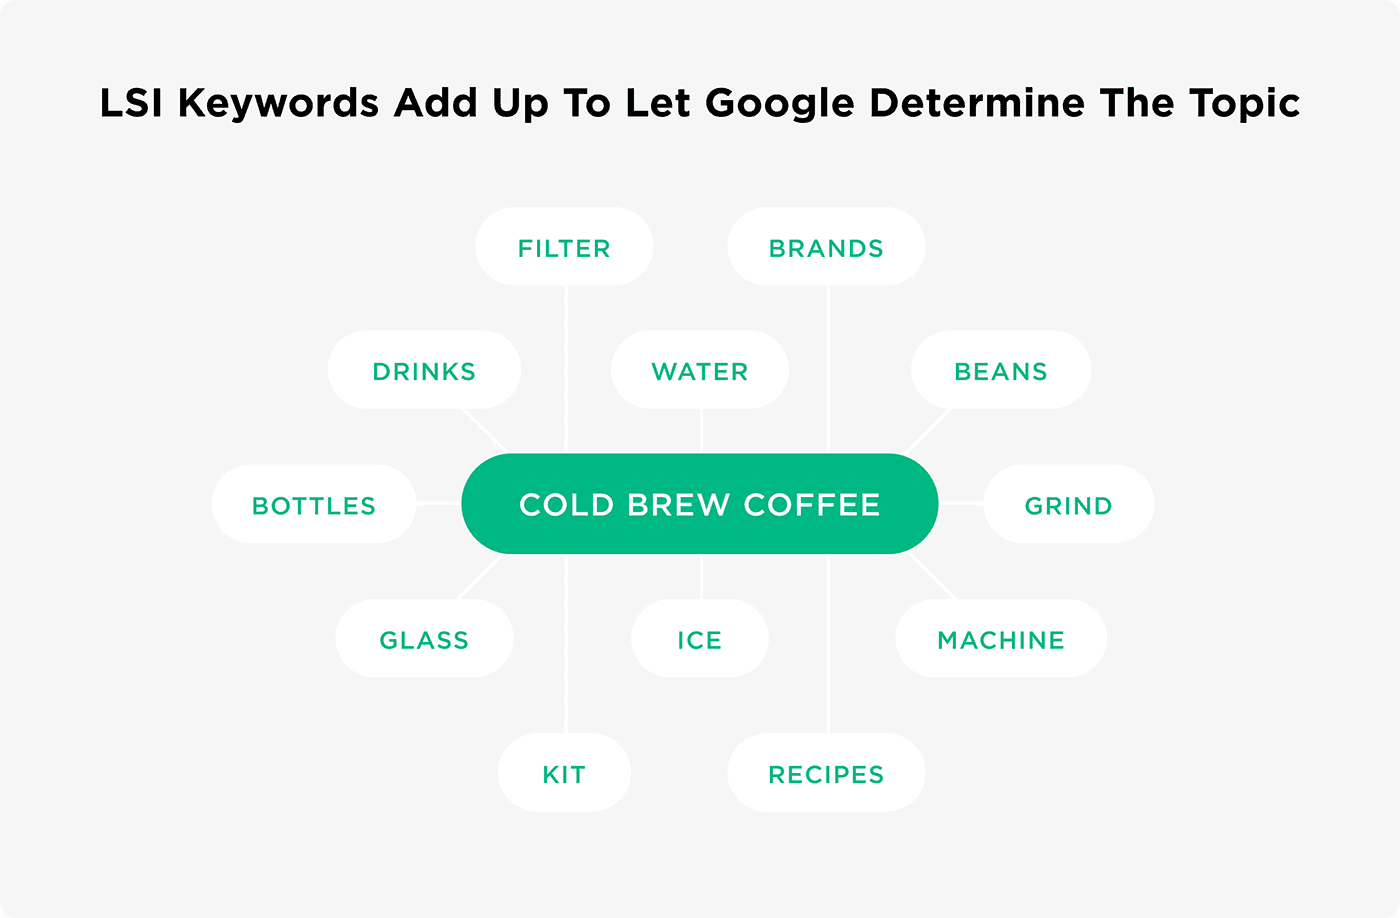 LSI Keywords add up to let Google determine the topic